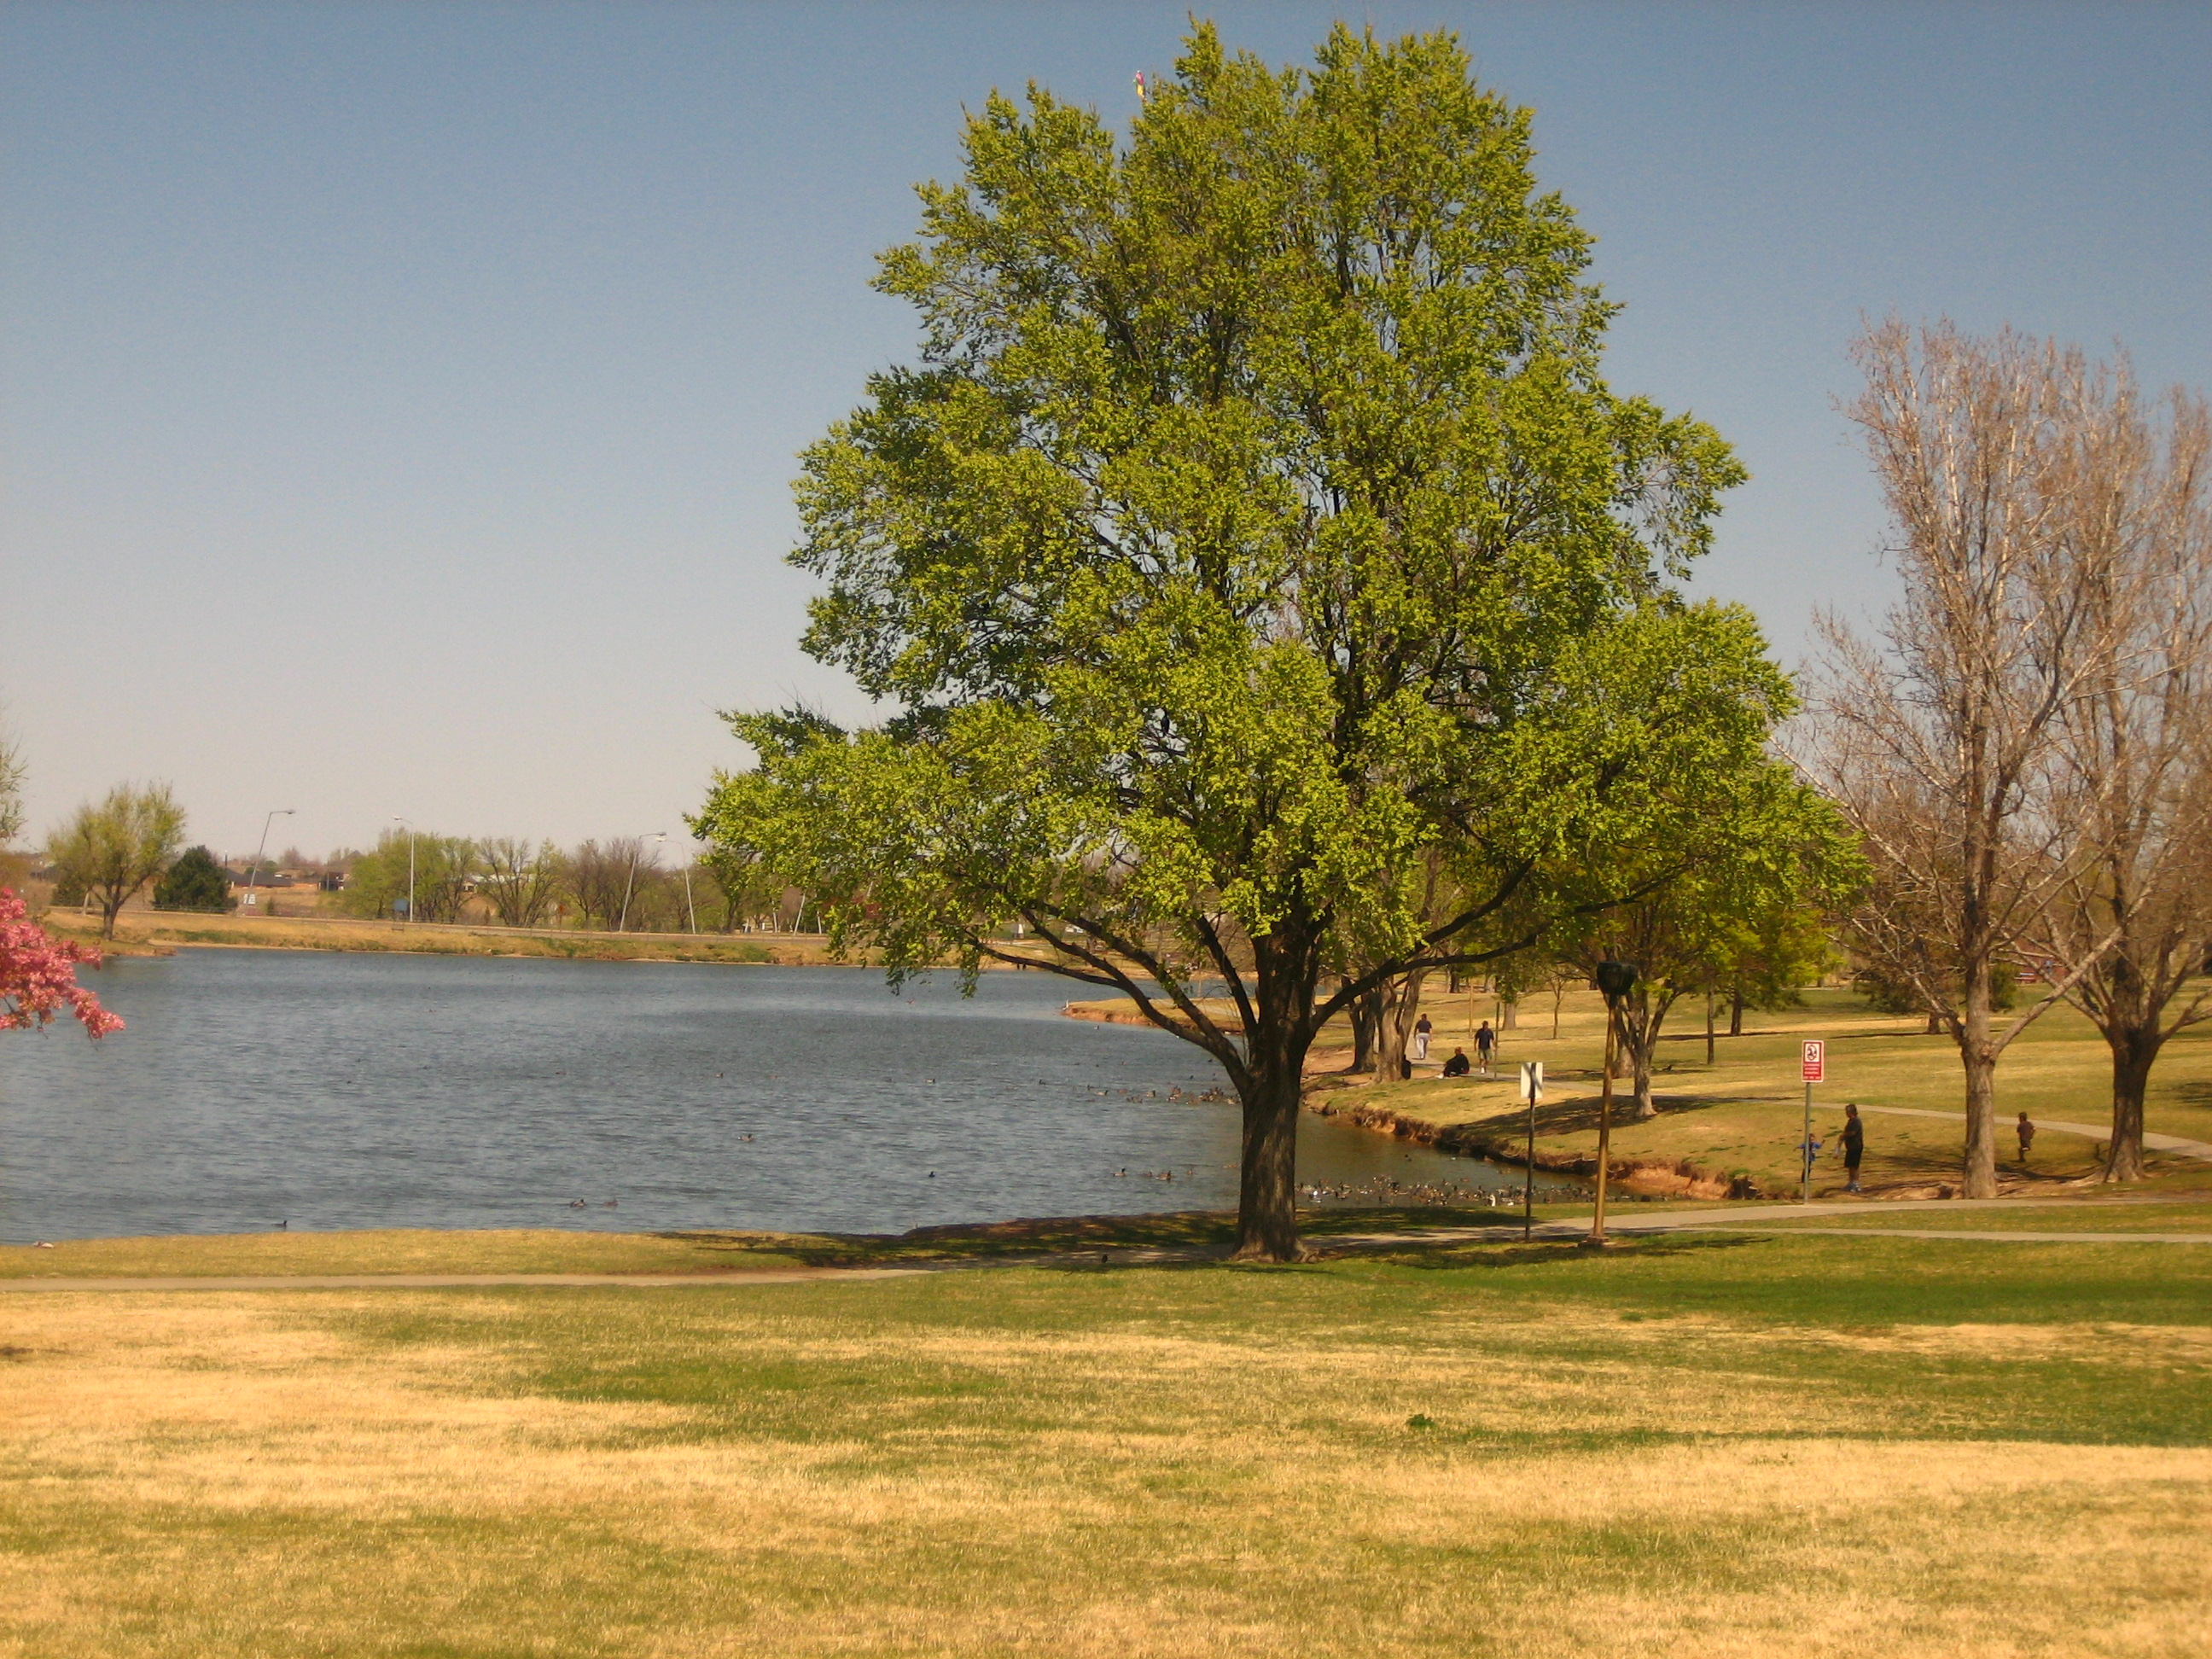 File:Amarillo pond IMG 0153.JPG - Wikimedia Commons